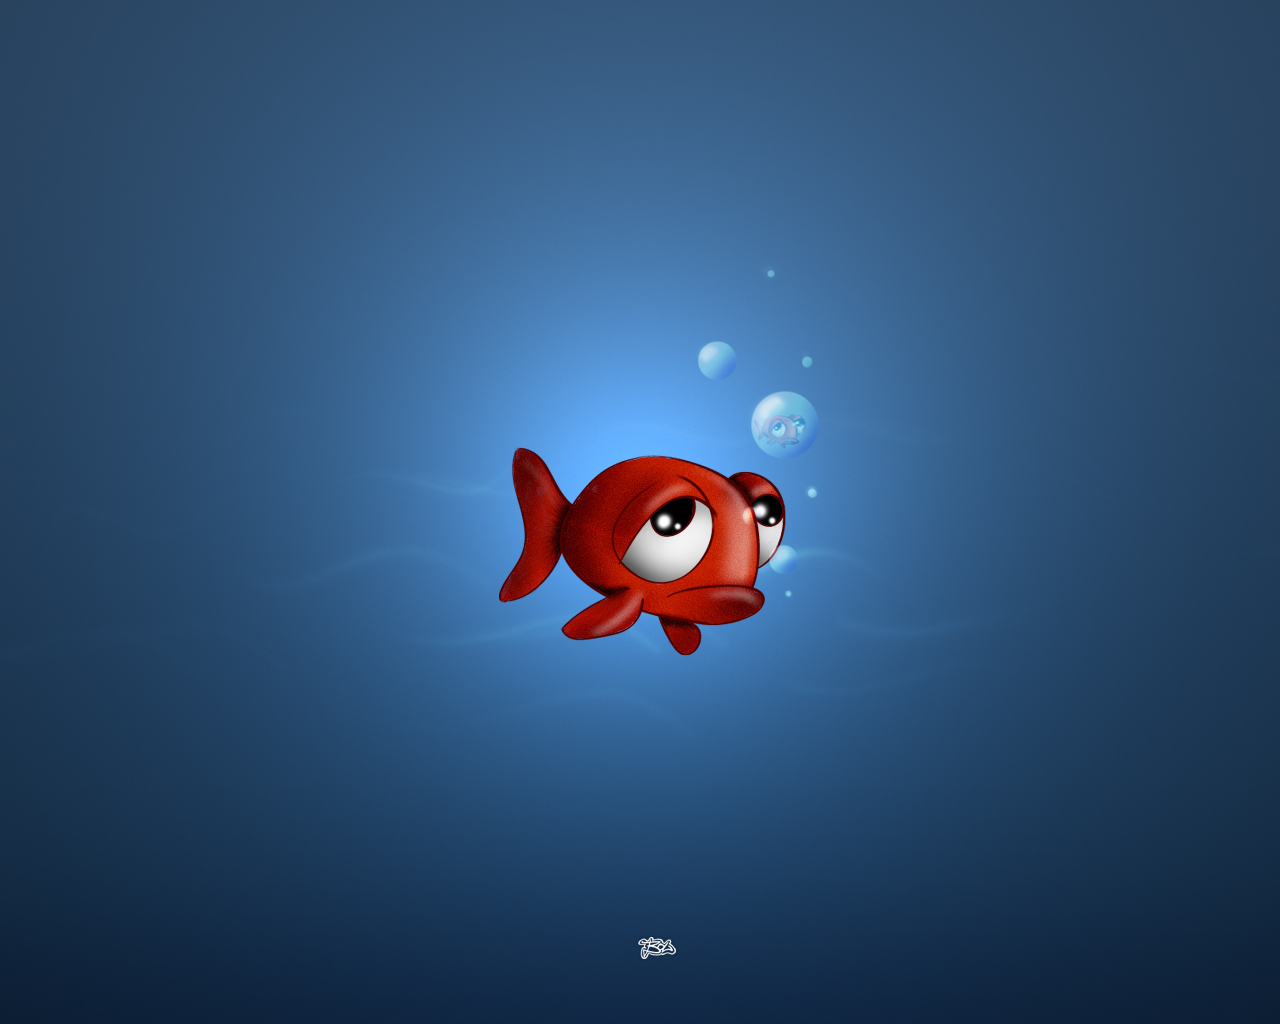 Free Download Background Fish By Nicobou Cool Backgrounds And Wallpapers 1280x1024 For Your Desktop Mobile Tablet Explore 47 Cool Fishing Wallpaper Fly Fishing Wallpaper Fishing Wallpaper Bass Fishing Desktop Wallpaper